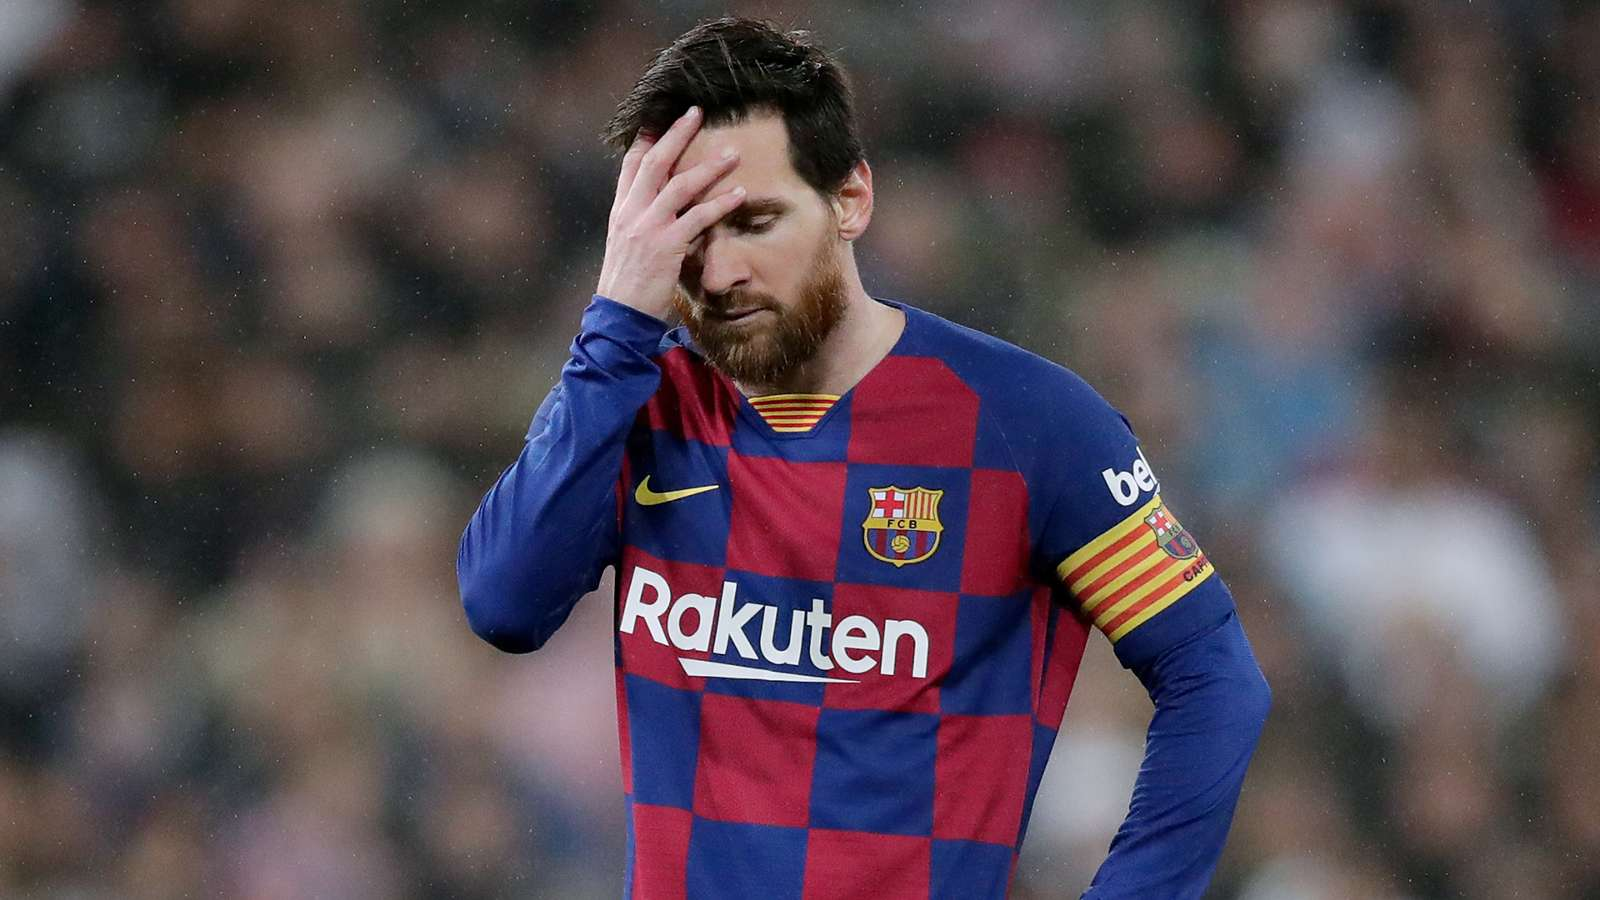 Lionel Messi explodes at Barcelona situation: 'I'm tired of always being the problem'